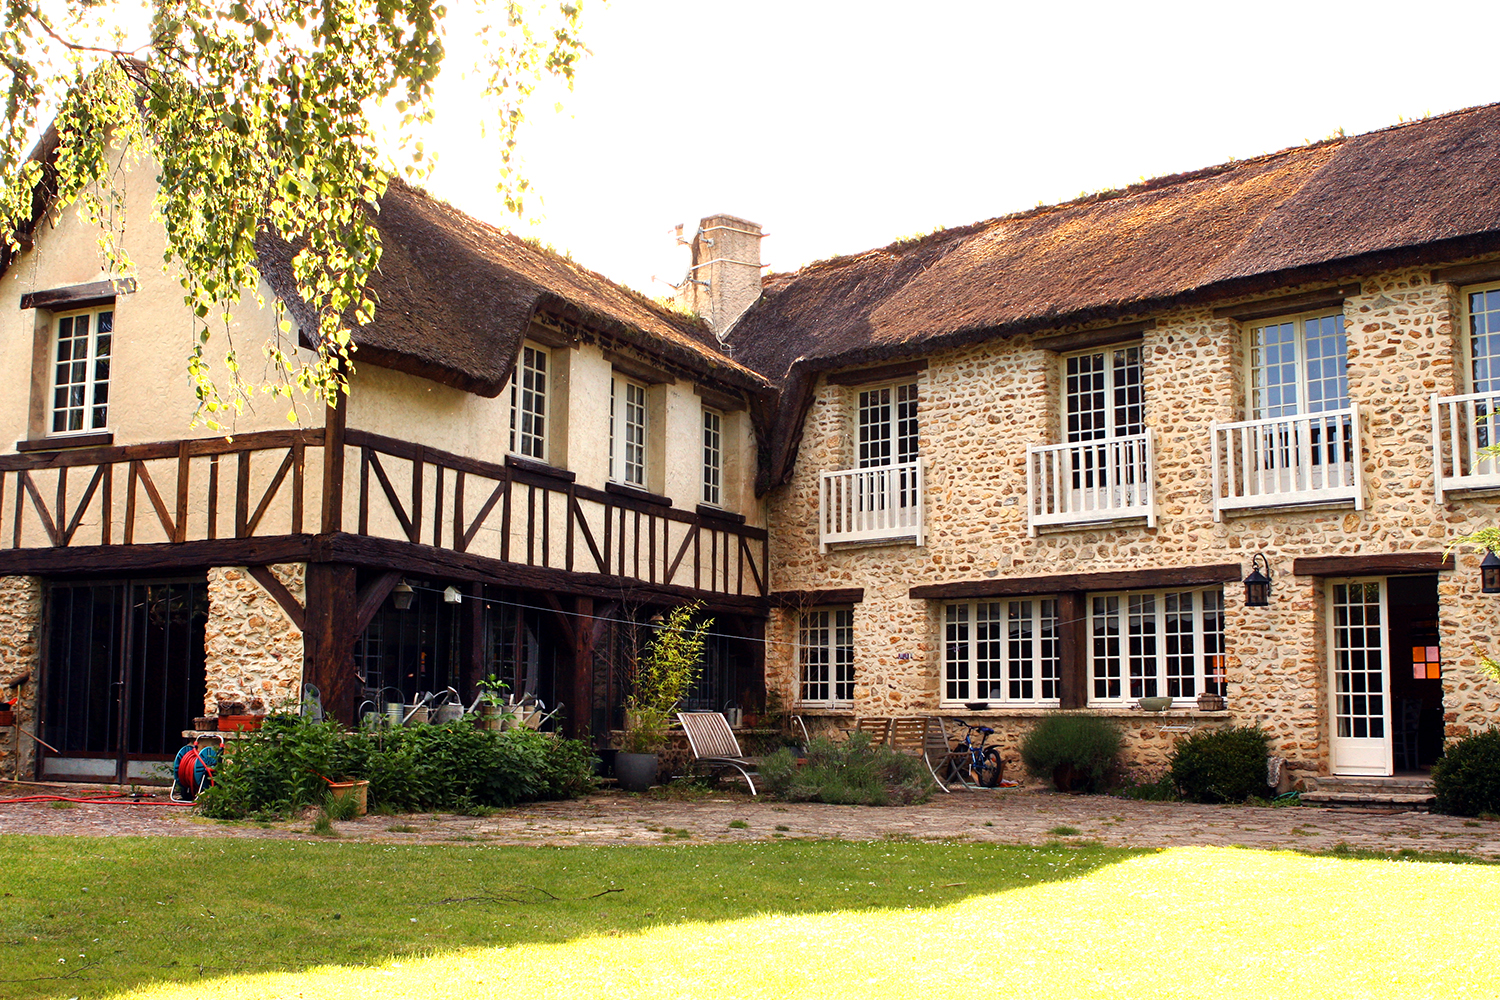 Nice_Normande_house_1-MINI.jpg